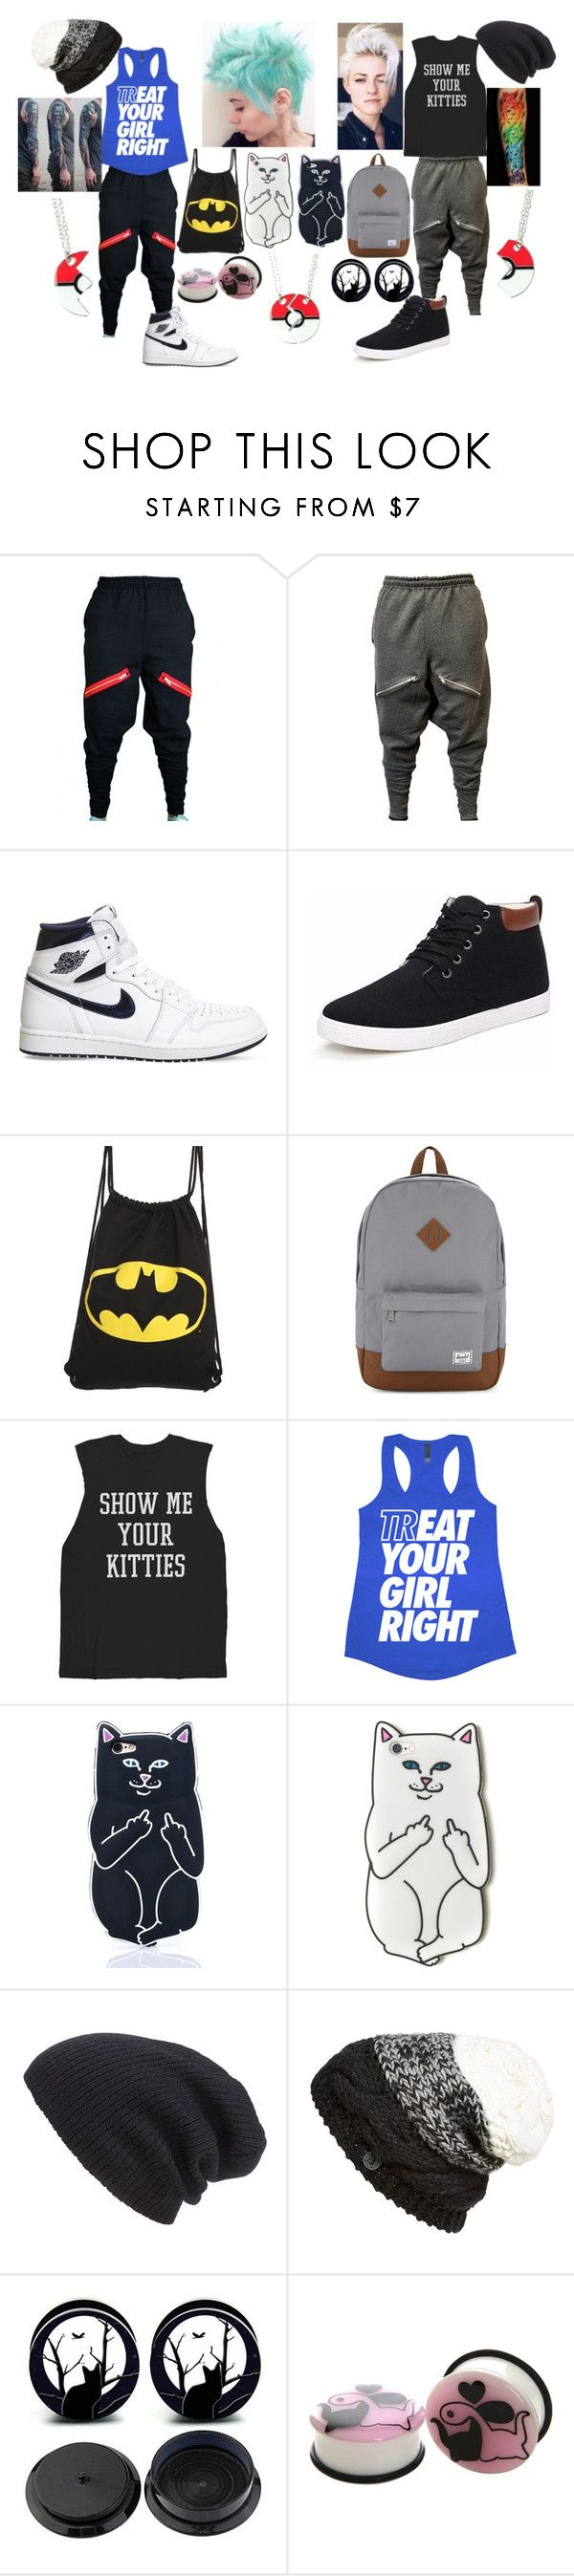 """1da1073d63679d1888ae009c4bfbeadc  dino benches - """"Love thissssssss"""" by dino-satan666 ❤ liked on Polyvore featuring NIKE, ELSE, ..."""